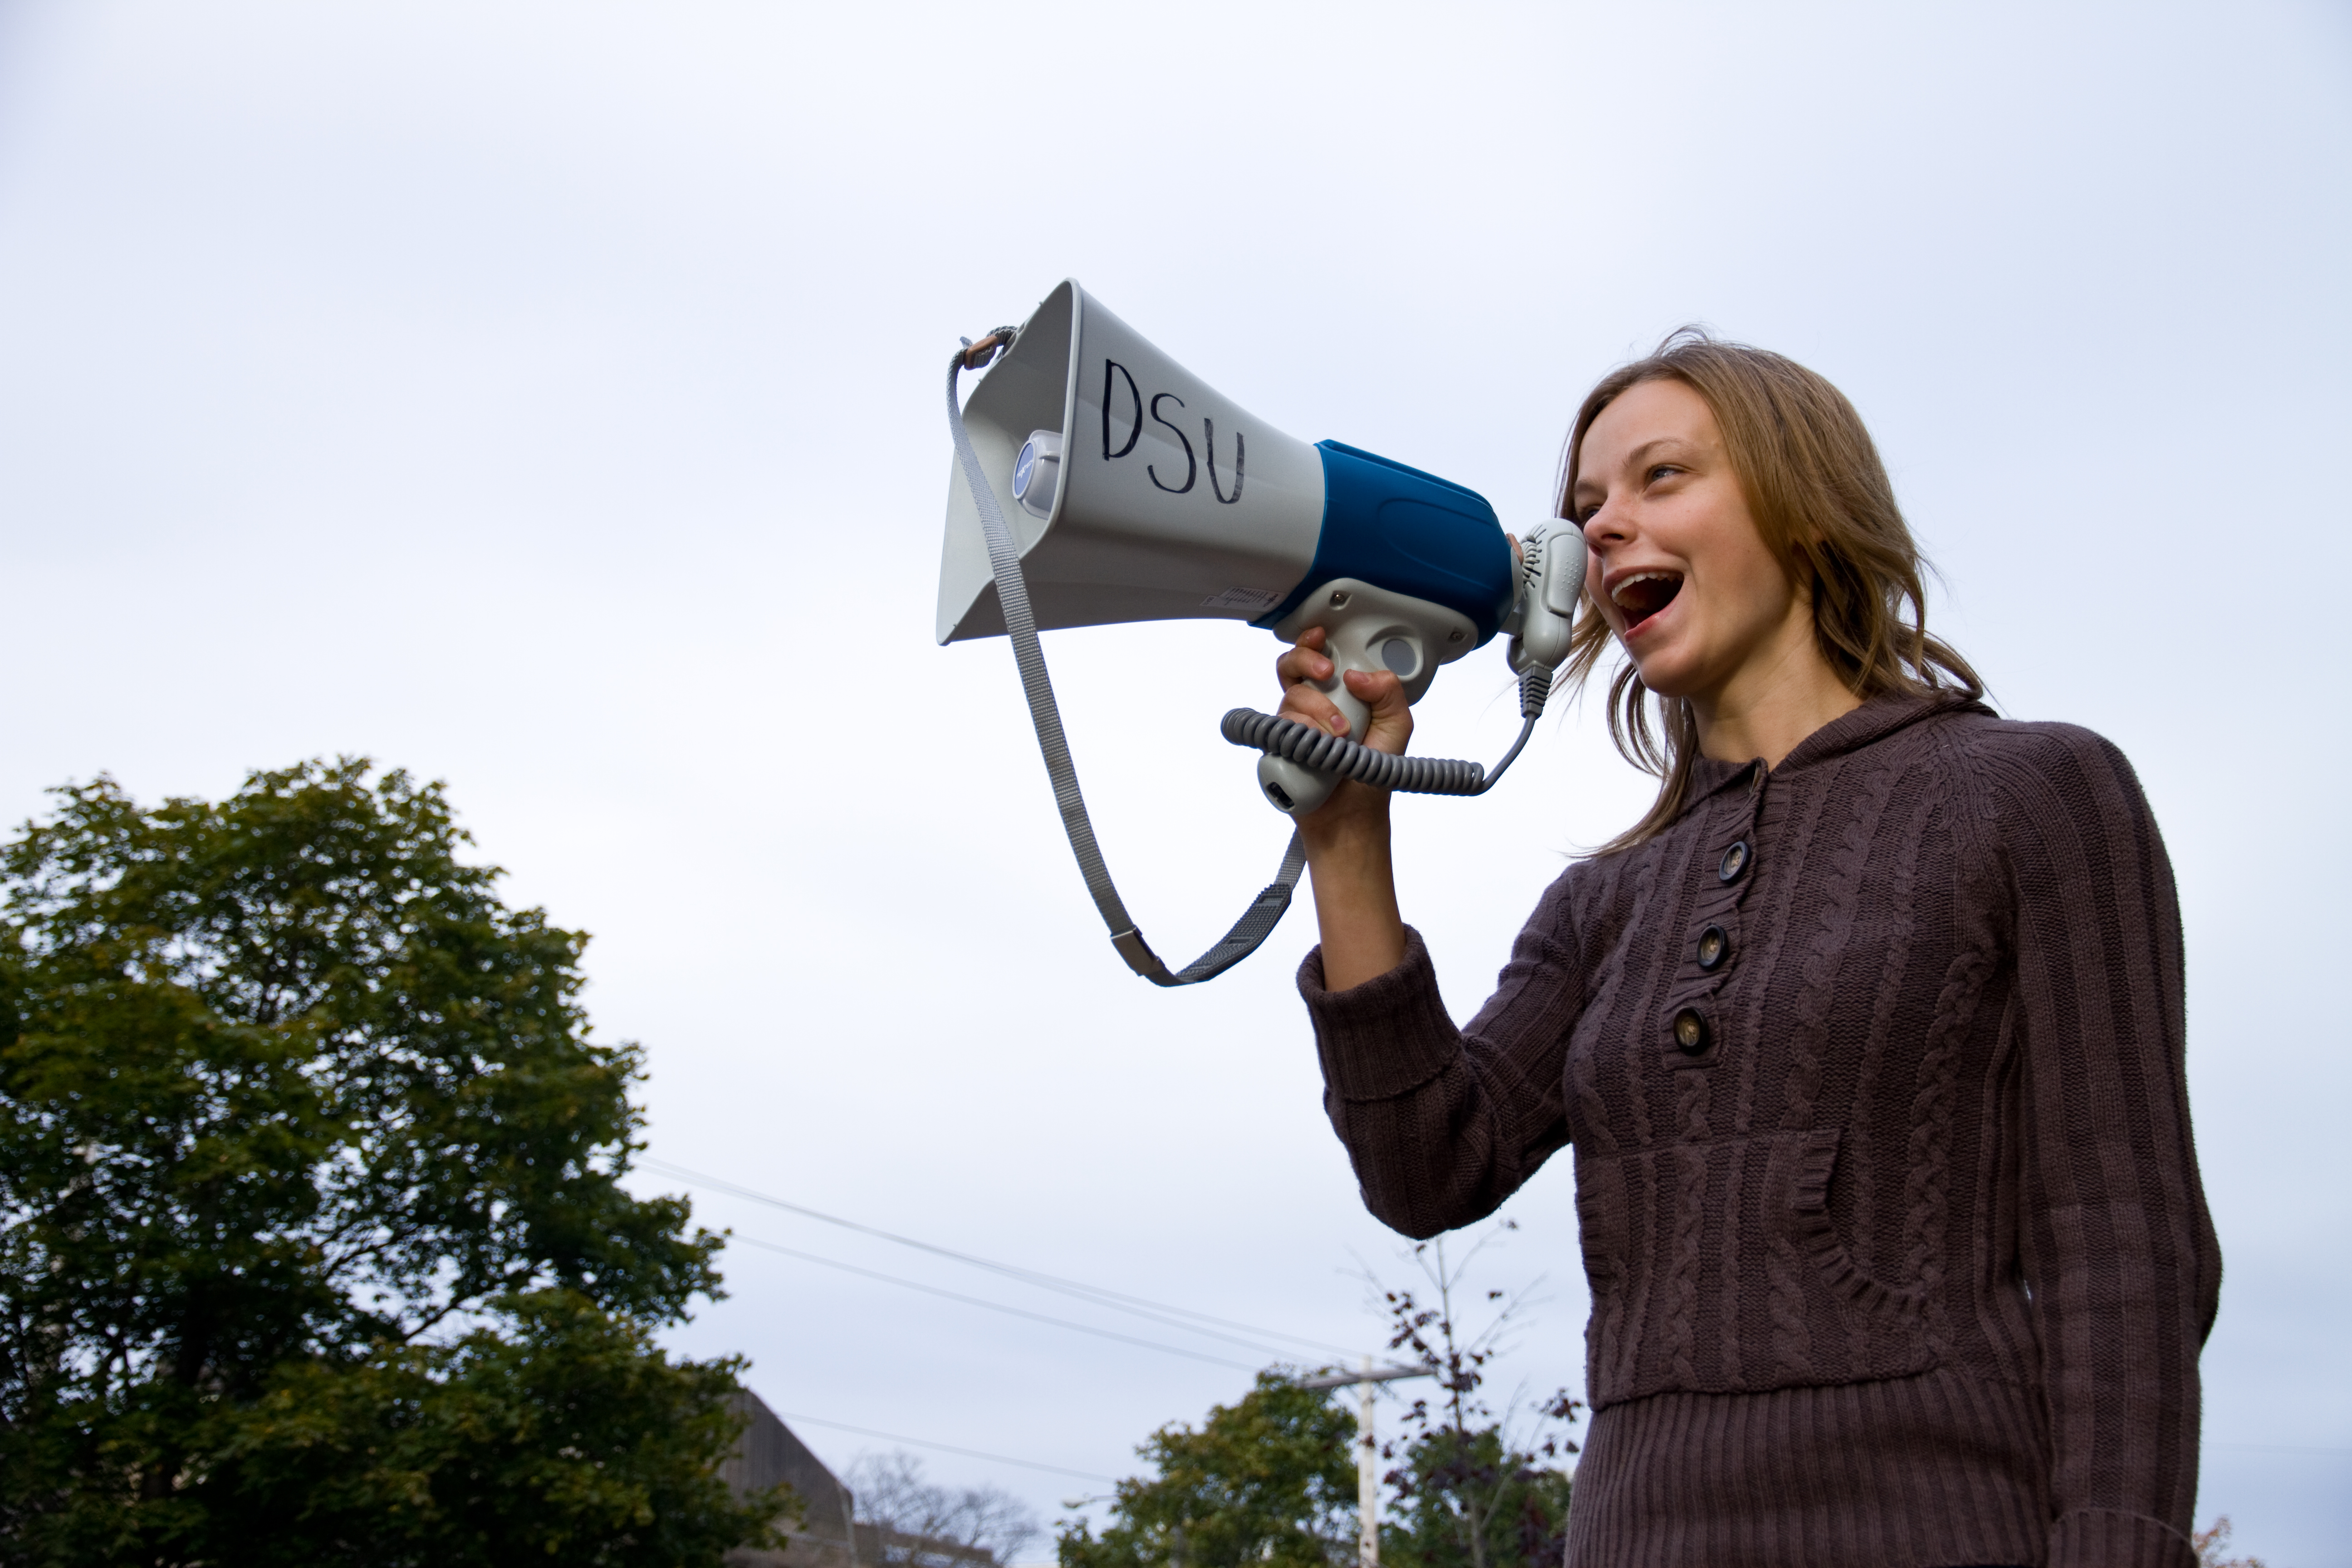 Misconceptions of the word call of the goals of feminism into question (photo by Bryn Karcha)